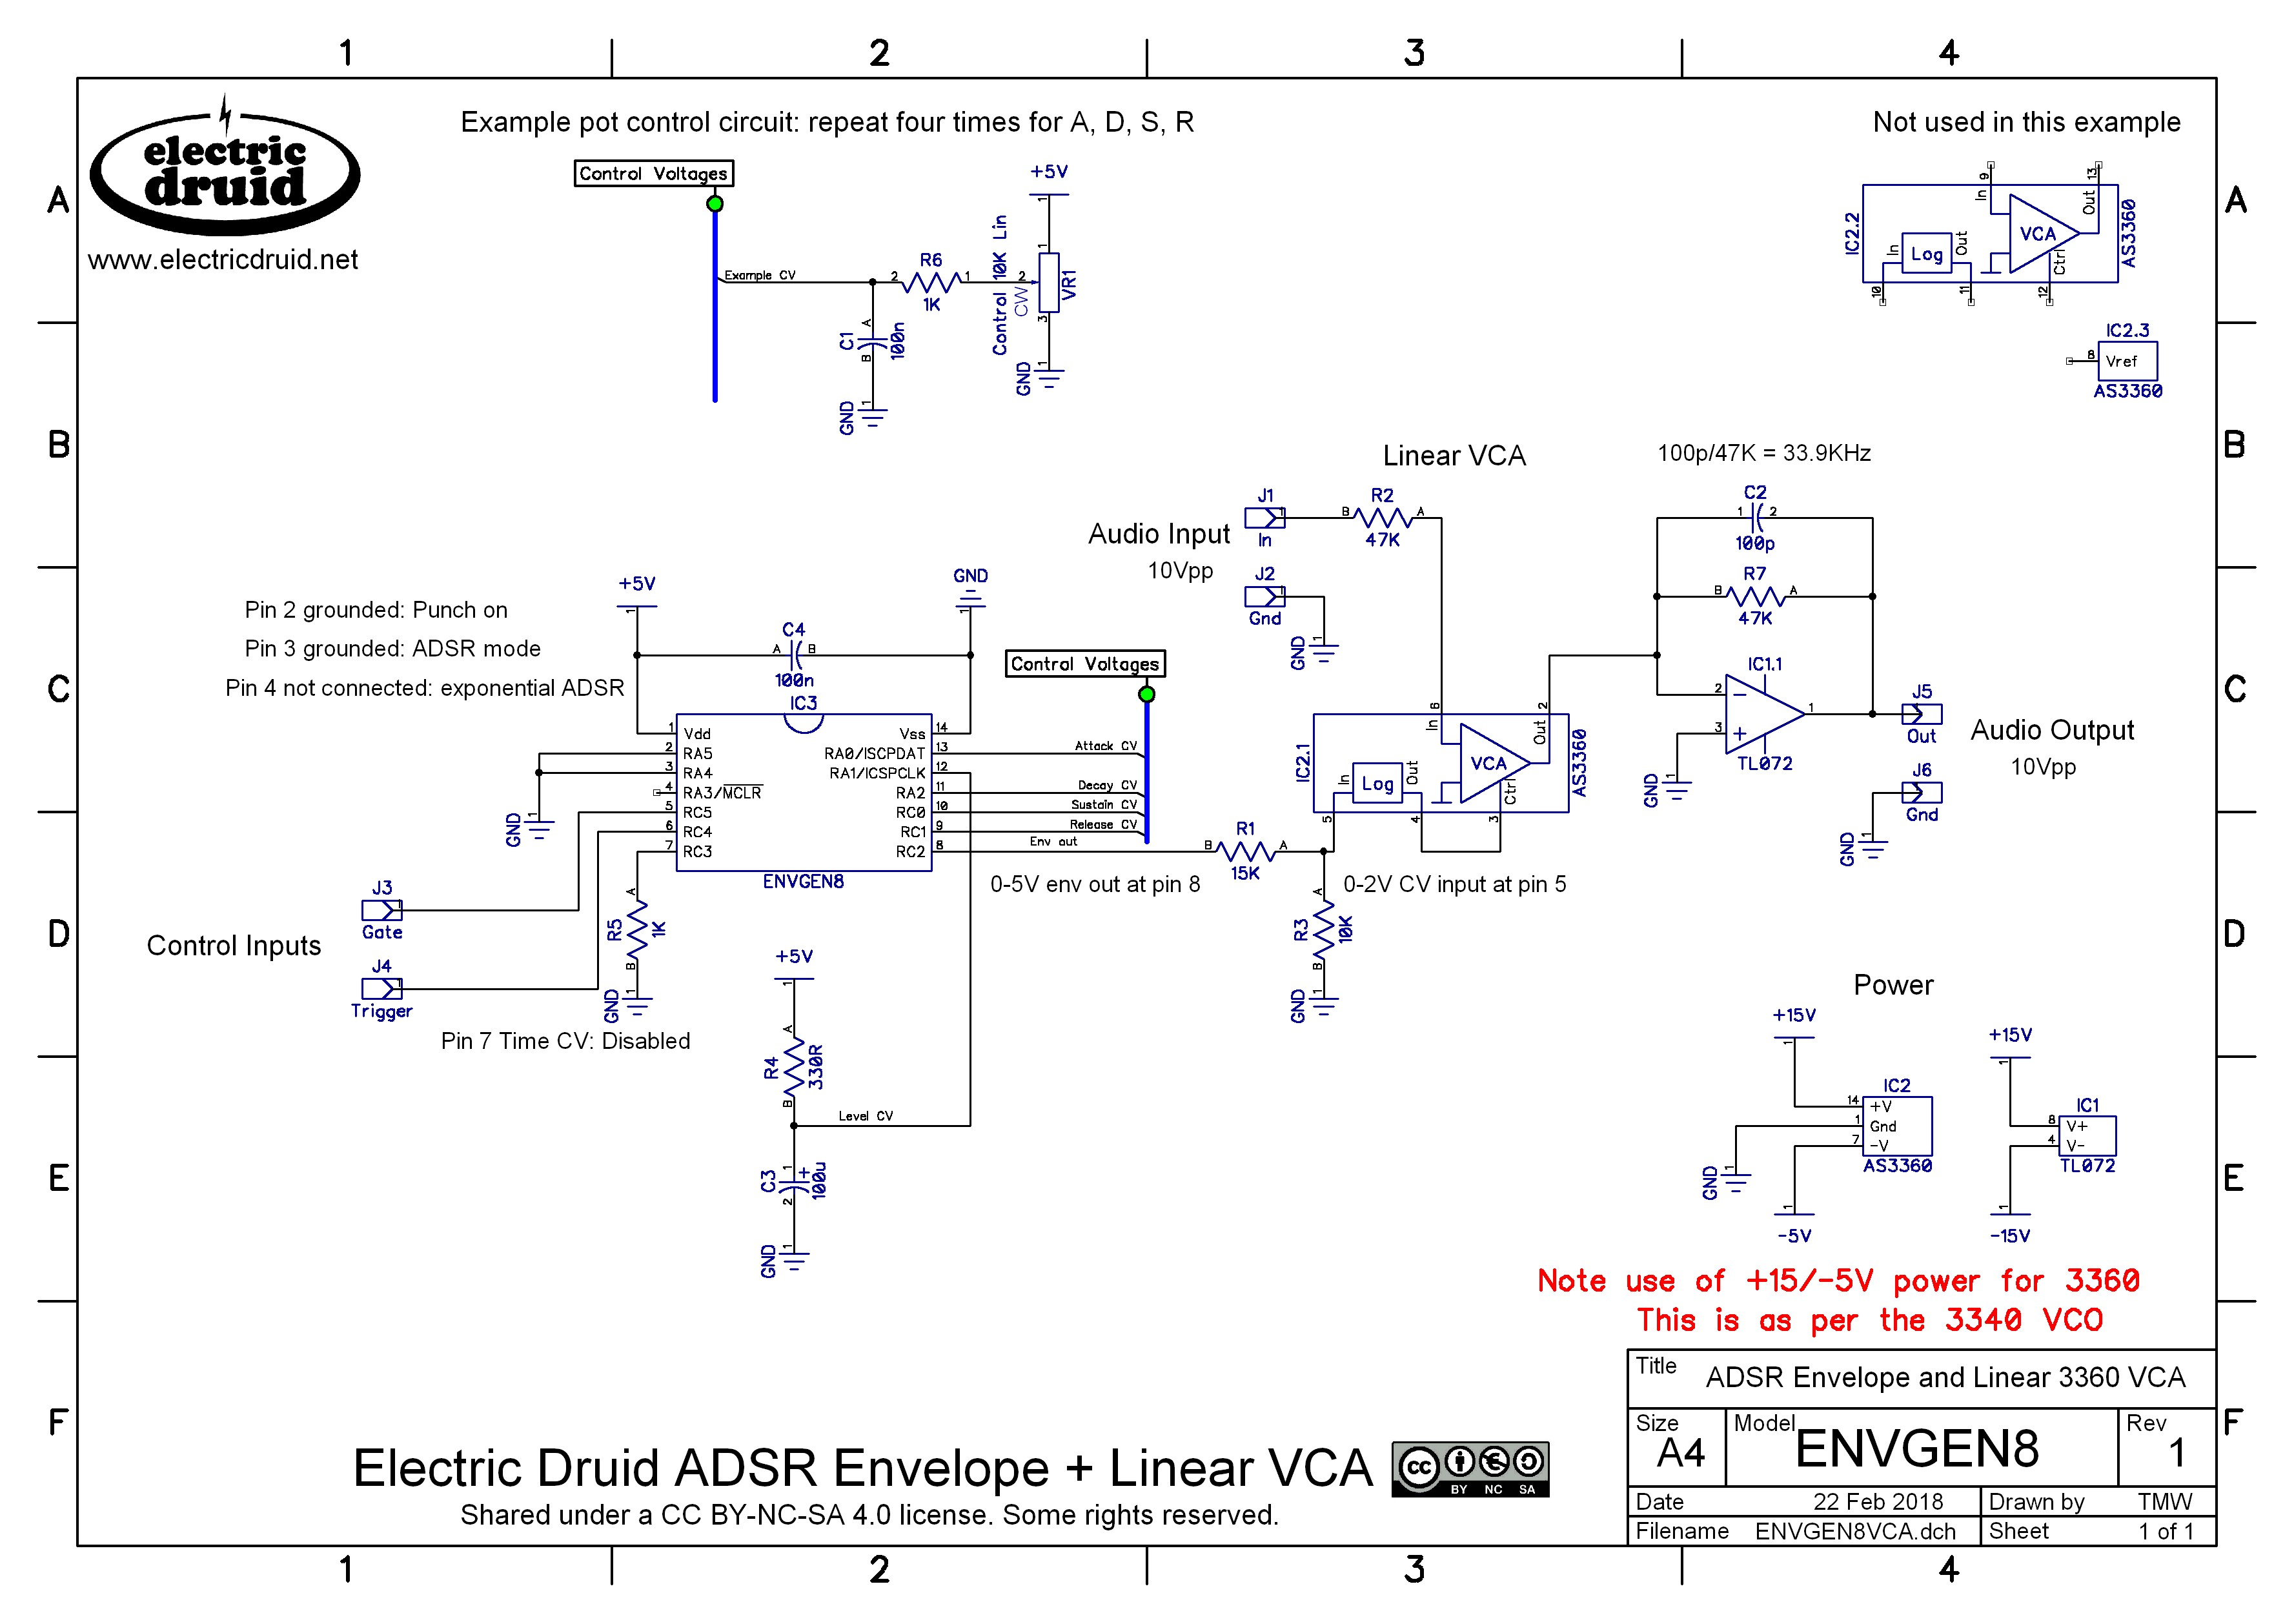 electric druid chips the next generation electric druidhex code from above file · envgen8 adsr and as3360 vca circuit diagram